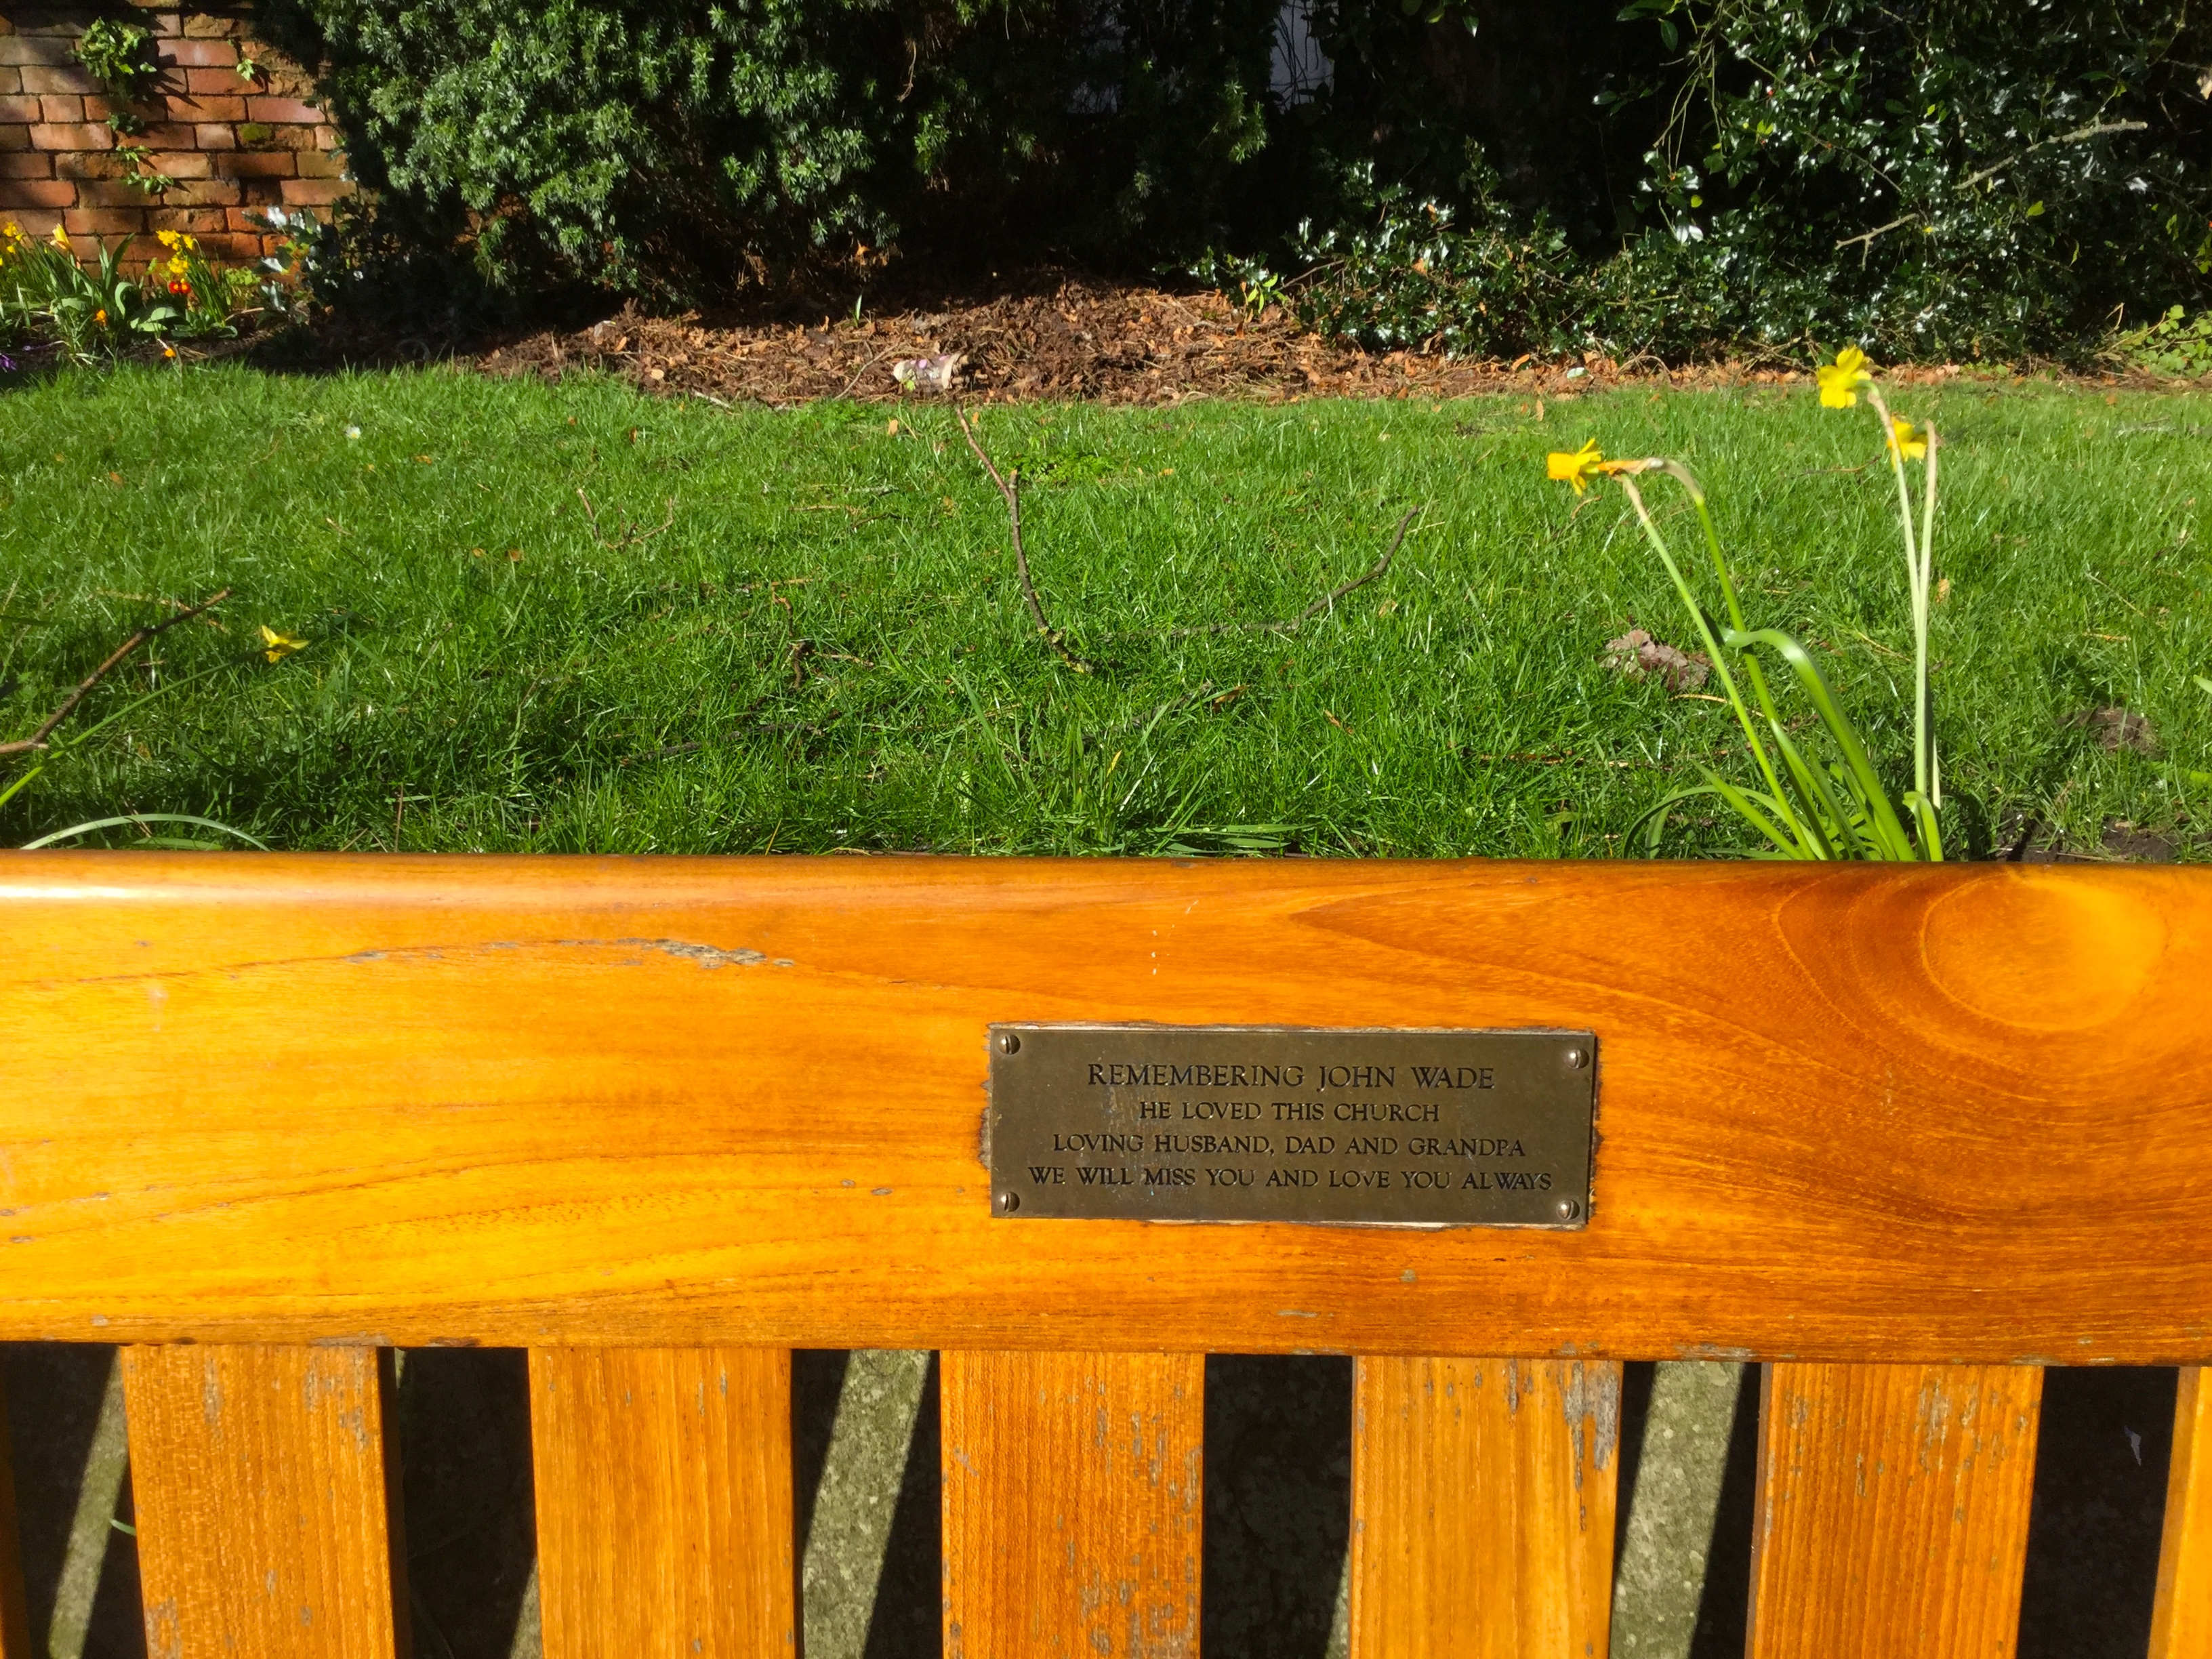 Memorial Bench dedicated to the memory of John Wade